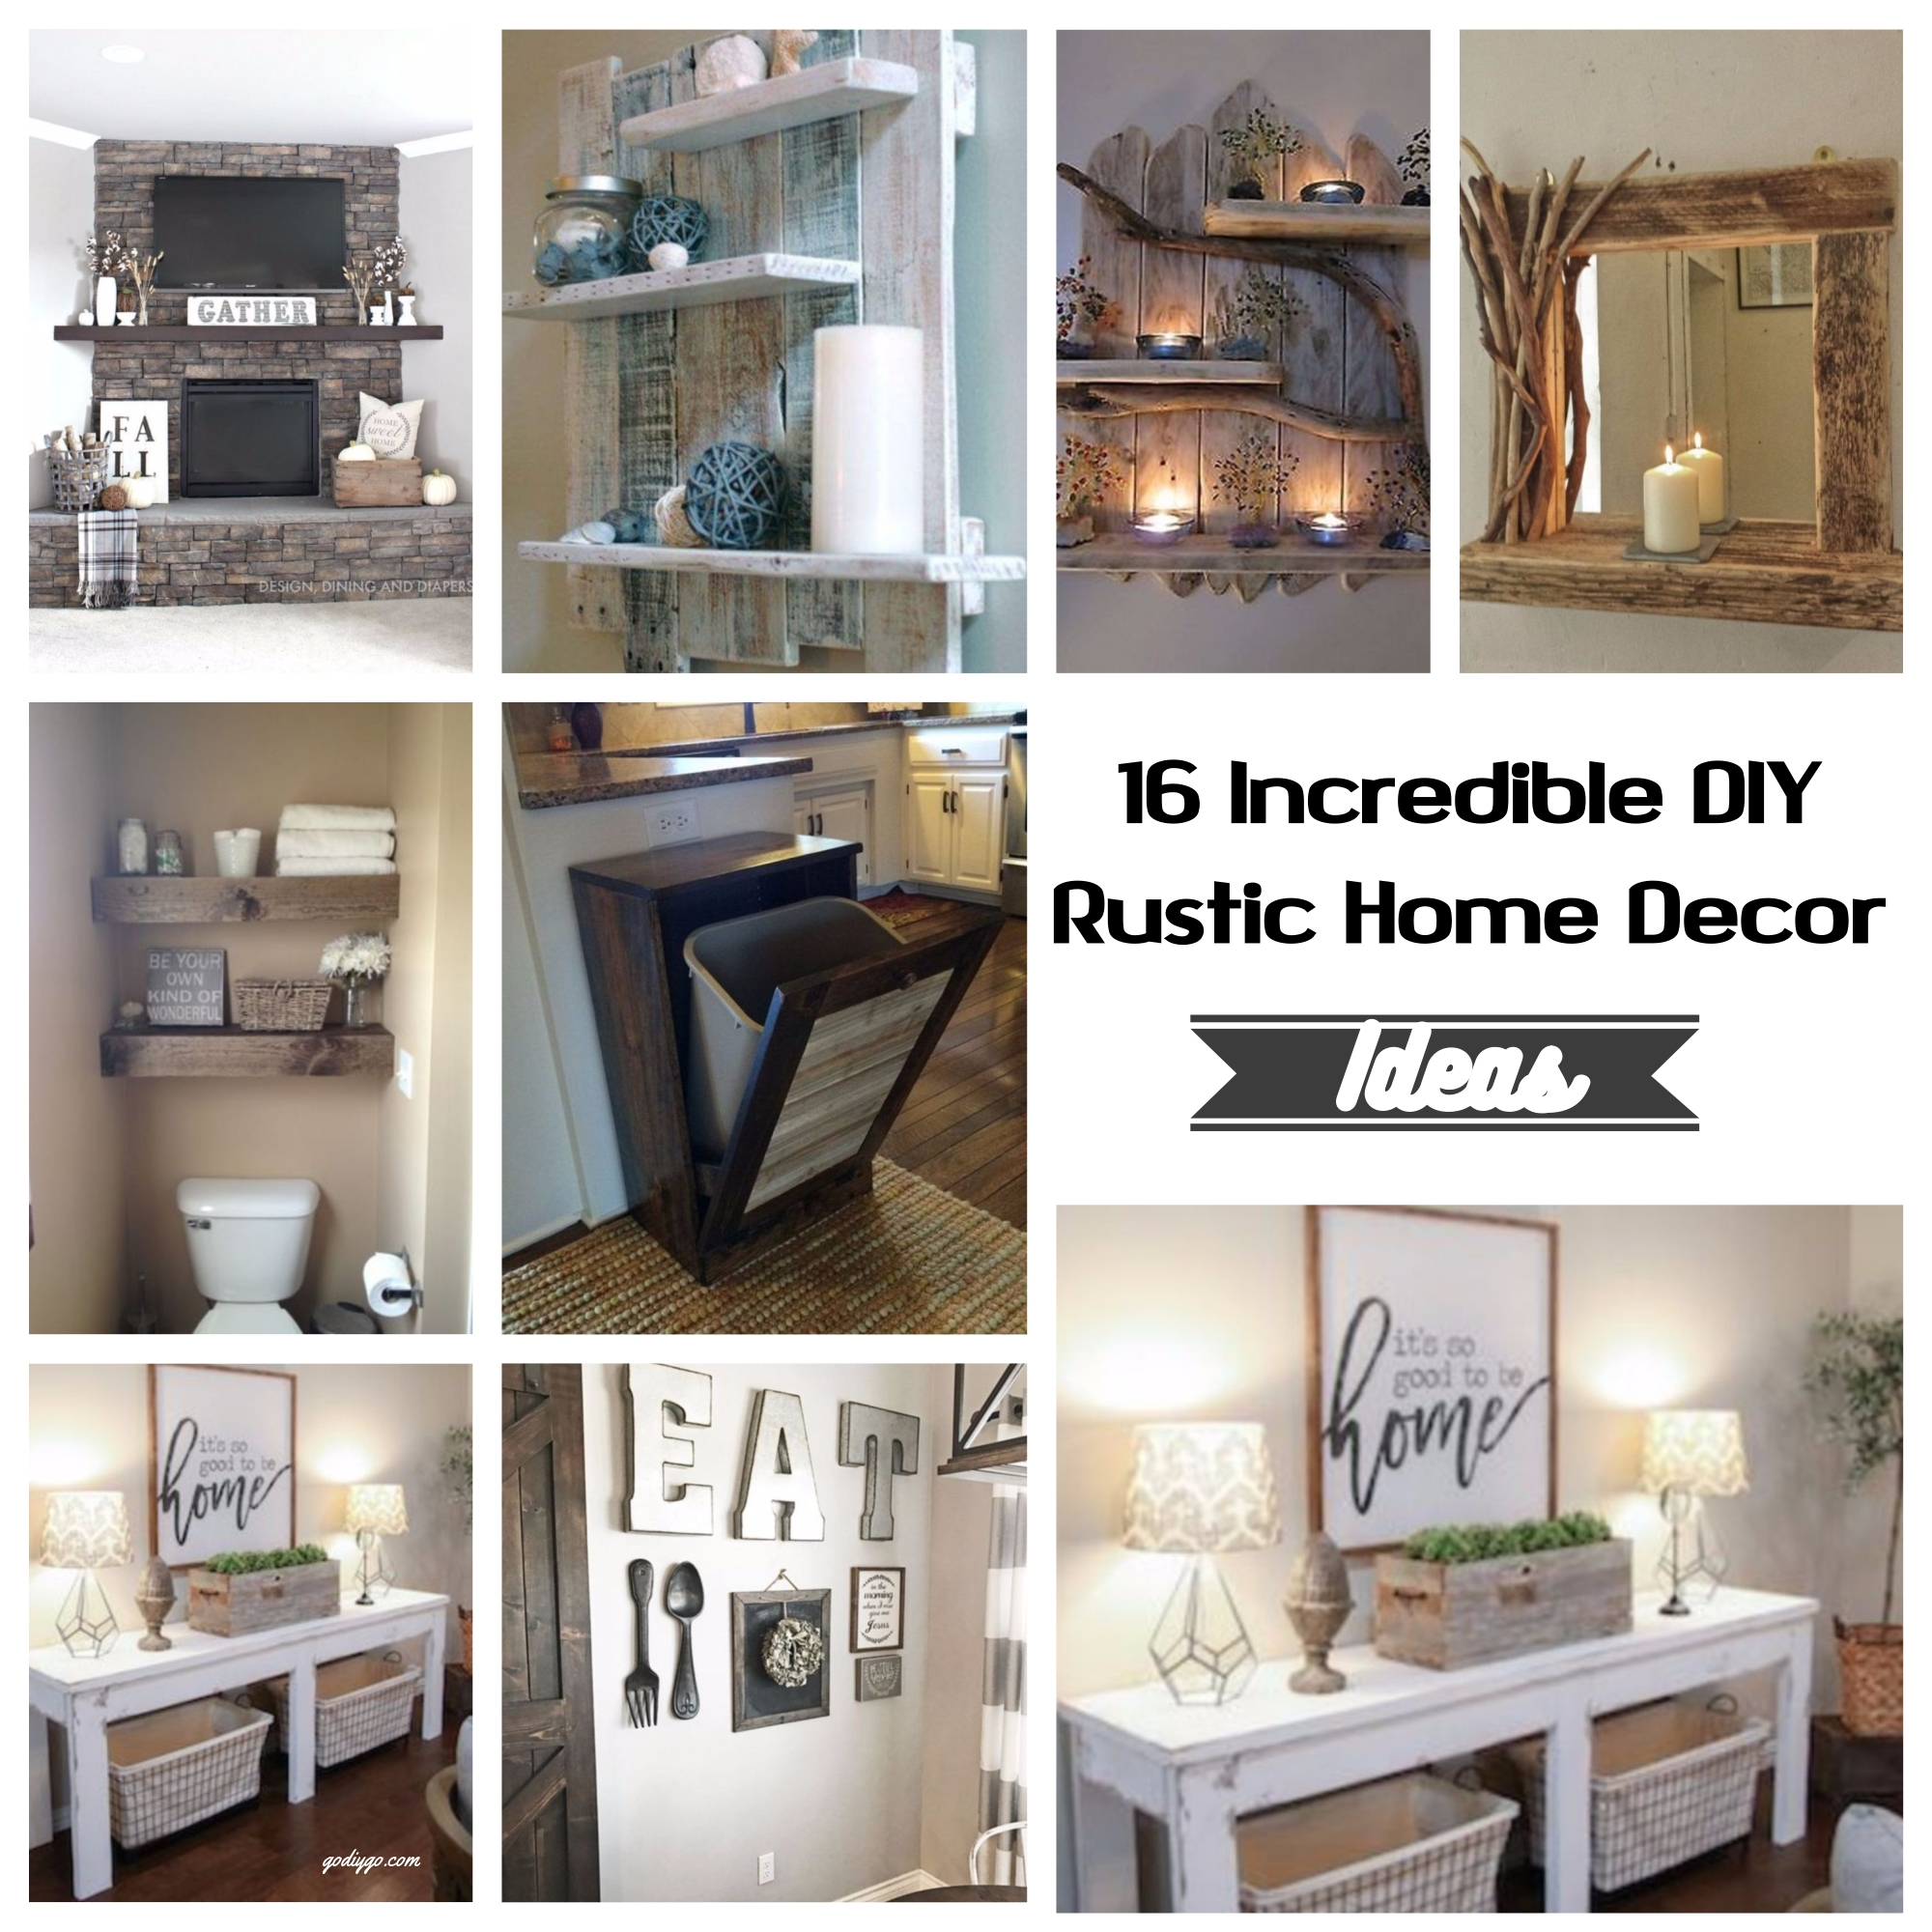 16 Incredible DIY Rustic Home Decor Ideas